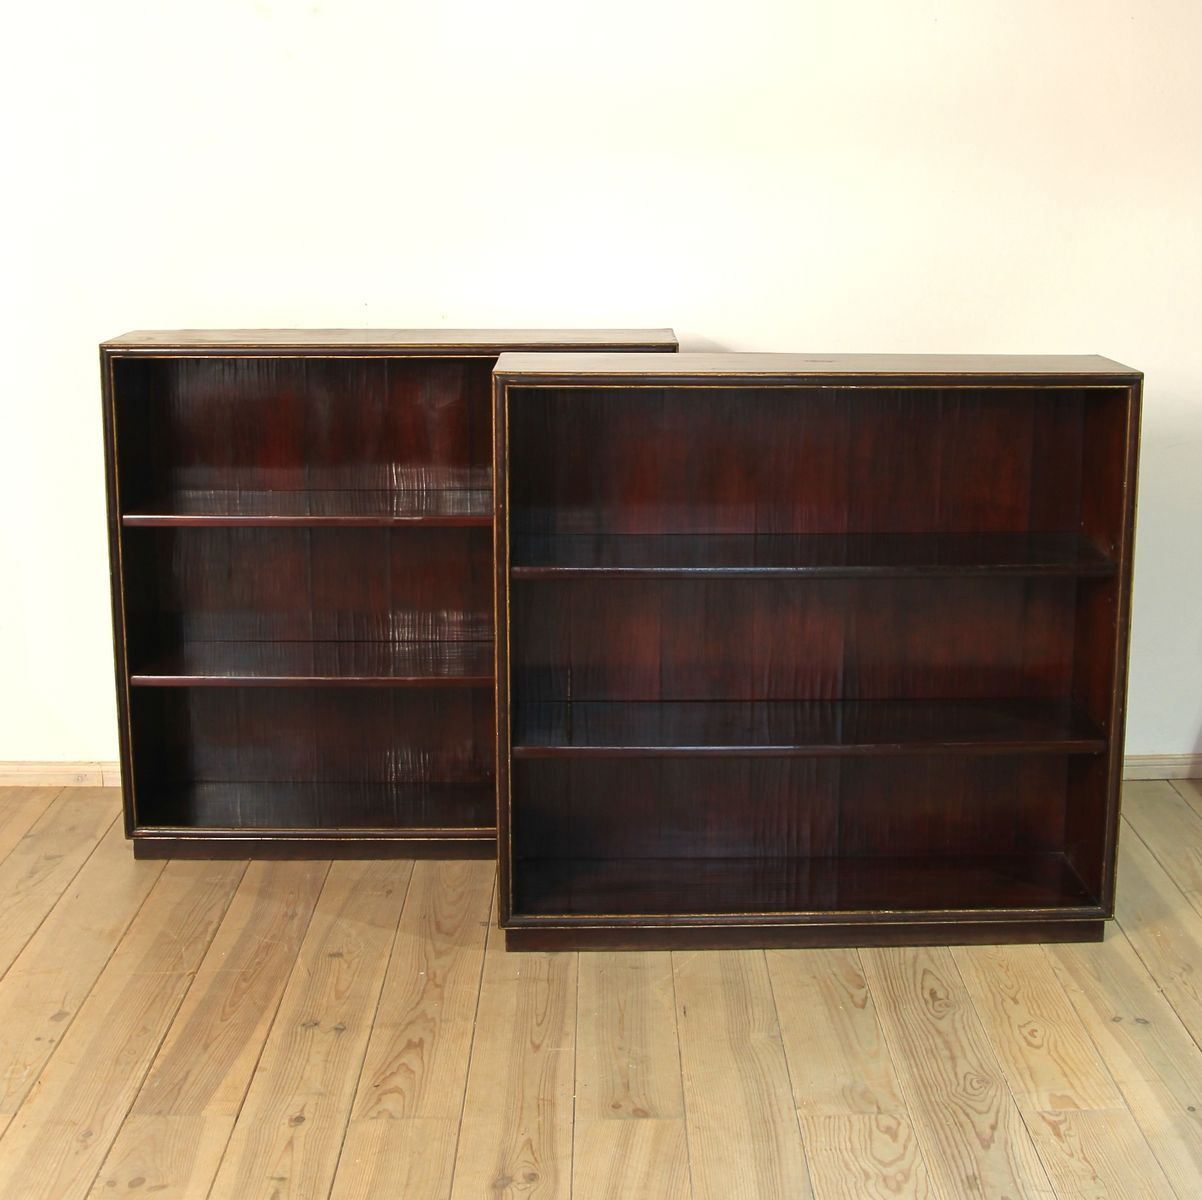 Wonderful image of Pair of Italian Shelves 1920s Set of 2 for sale at Pamono with #A39228 color and 1201x1200 pixels